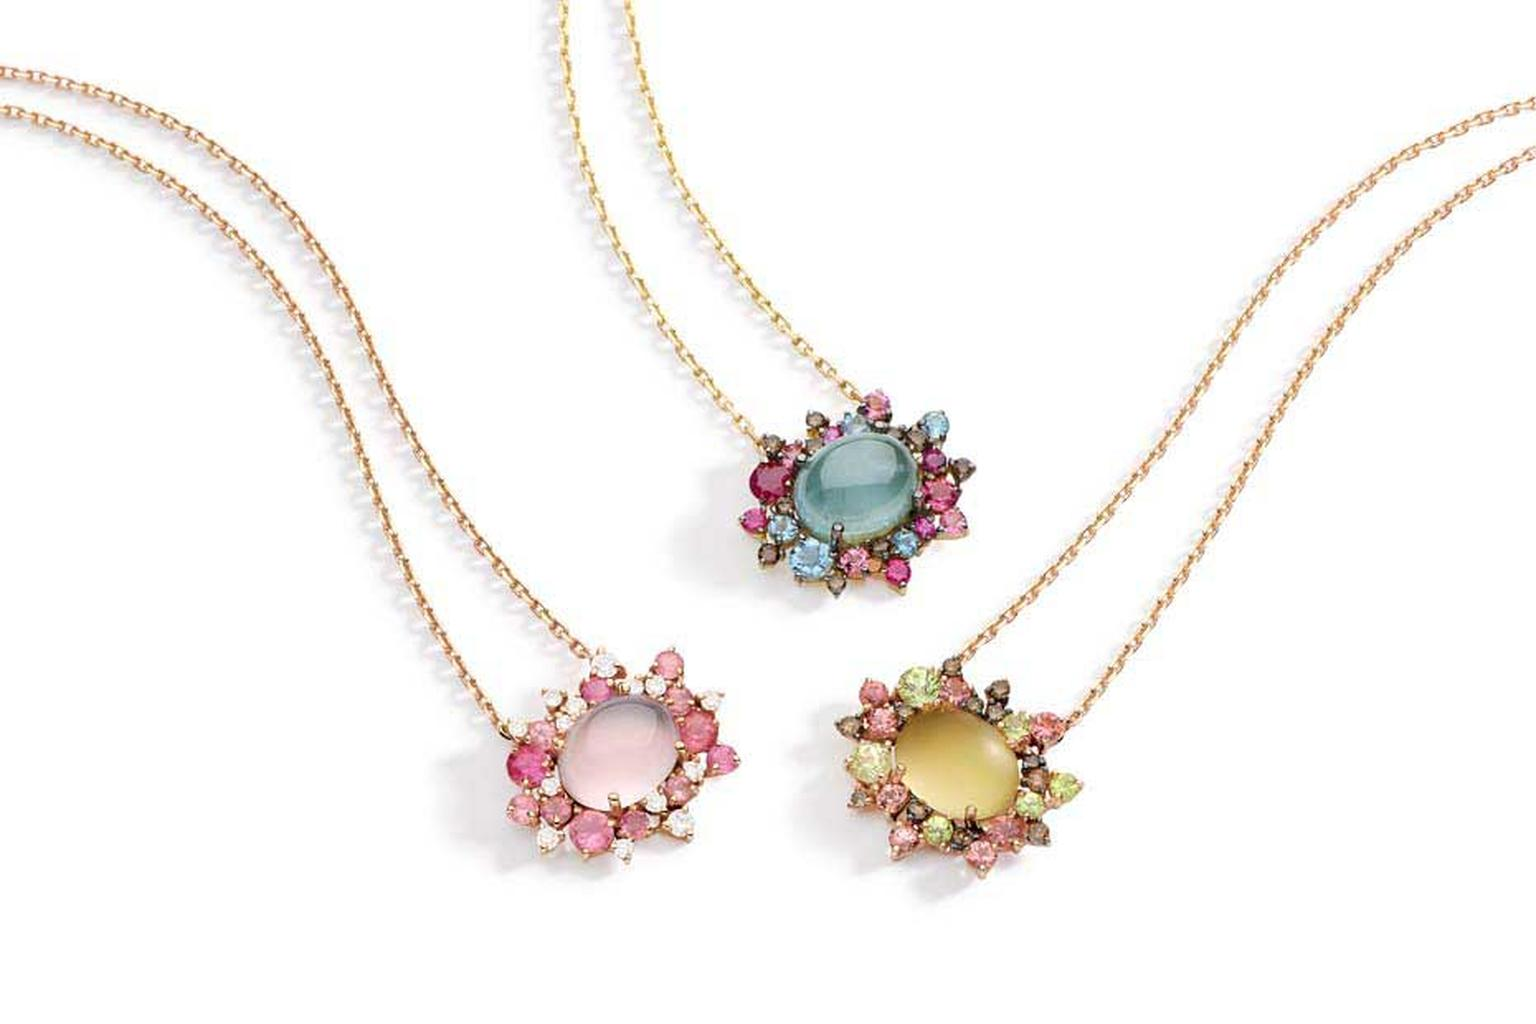 Brumani Baobab collection necklaces in yellow gold features a trio of colour combinations, including round brown and white diamonds, aquamarine, rose, smoky and lemon quartz, ruby, pink tourmaline and mandarin garnet.